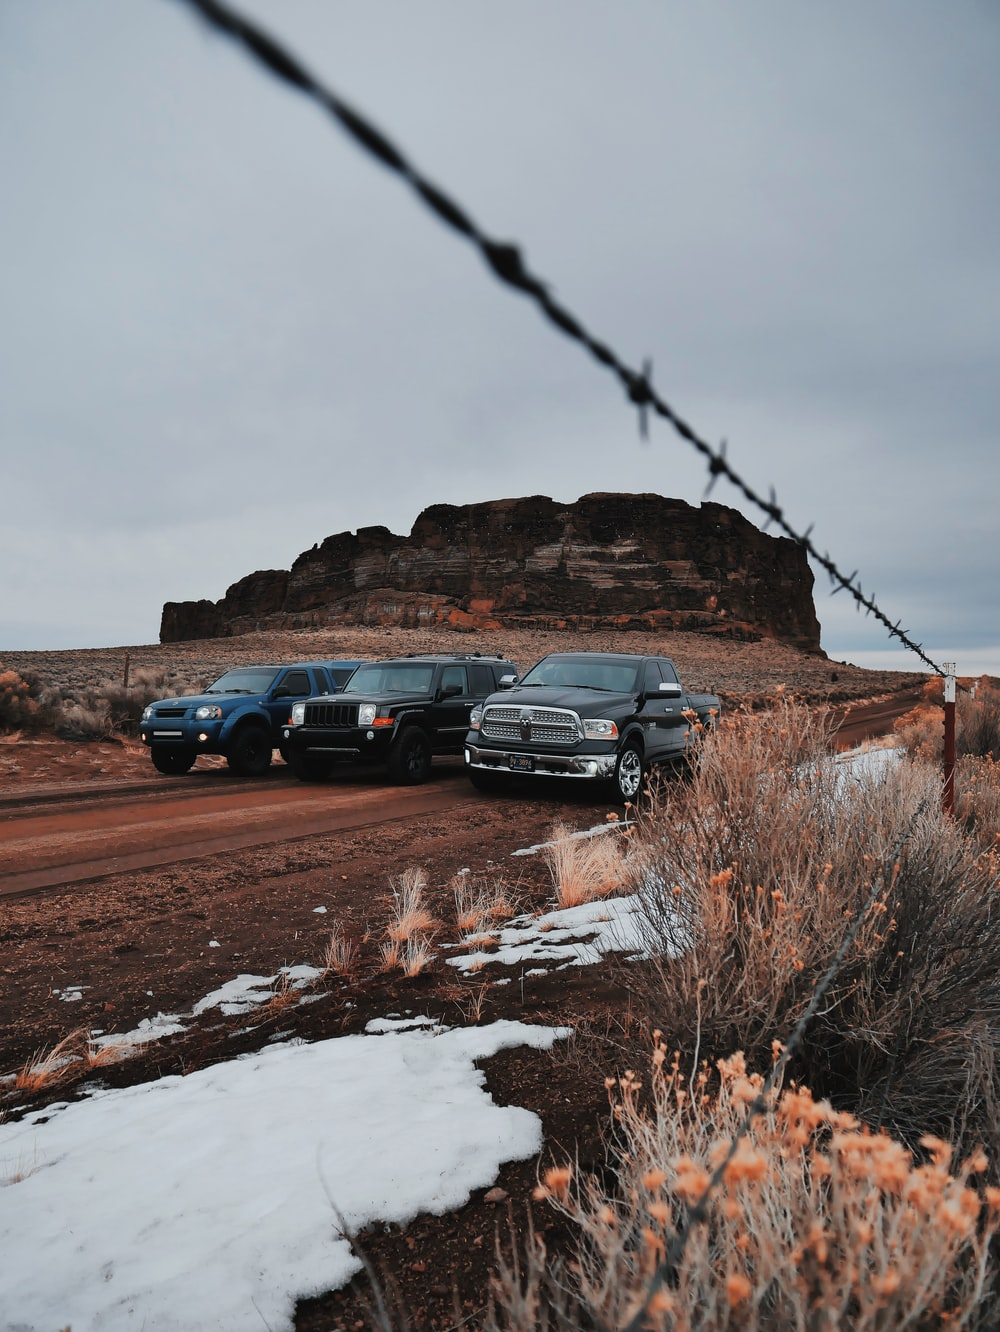 three black SUV on the field with rock formation